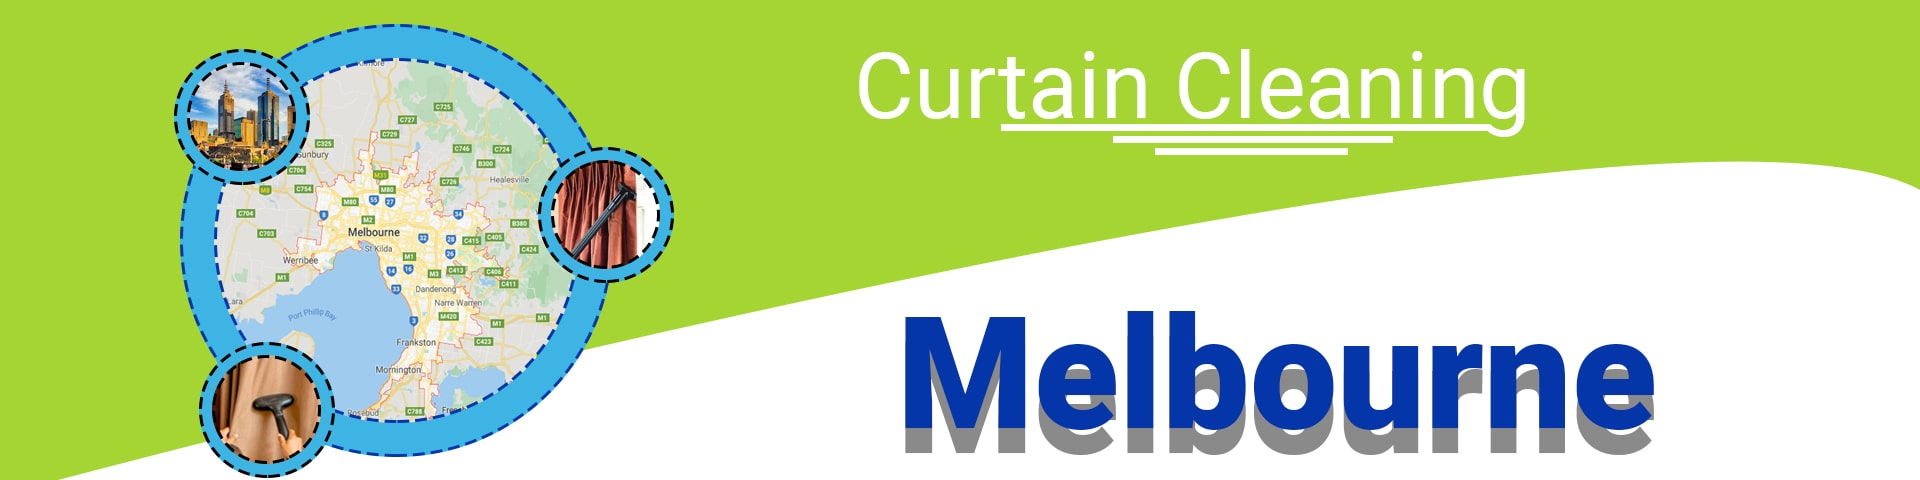 Curtain Cleaning Melbourne Squeaky Clean Carpet